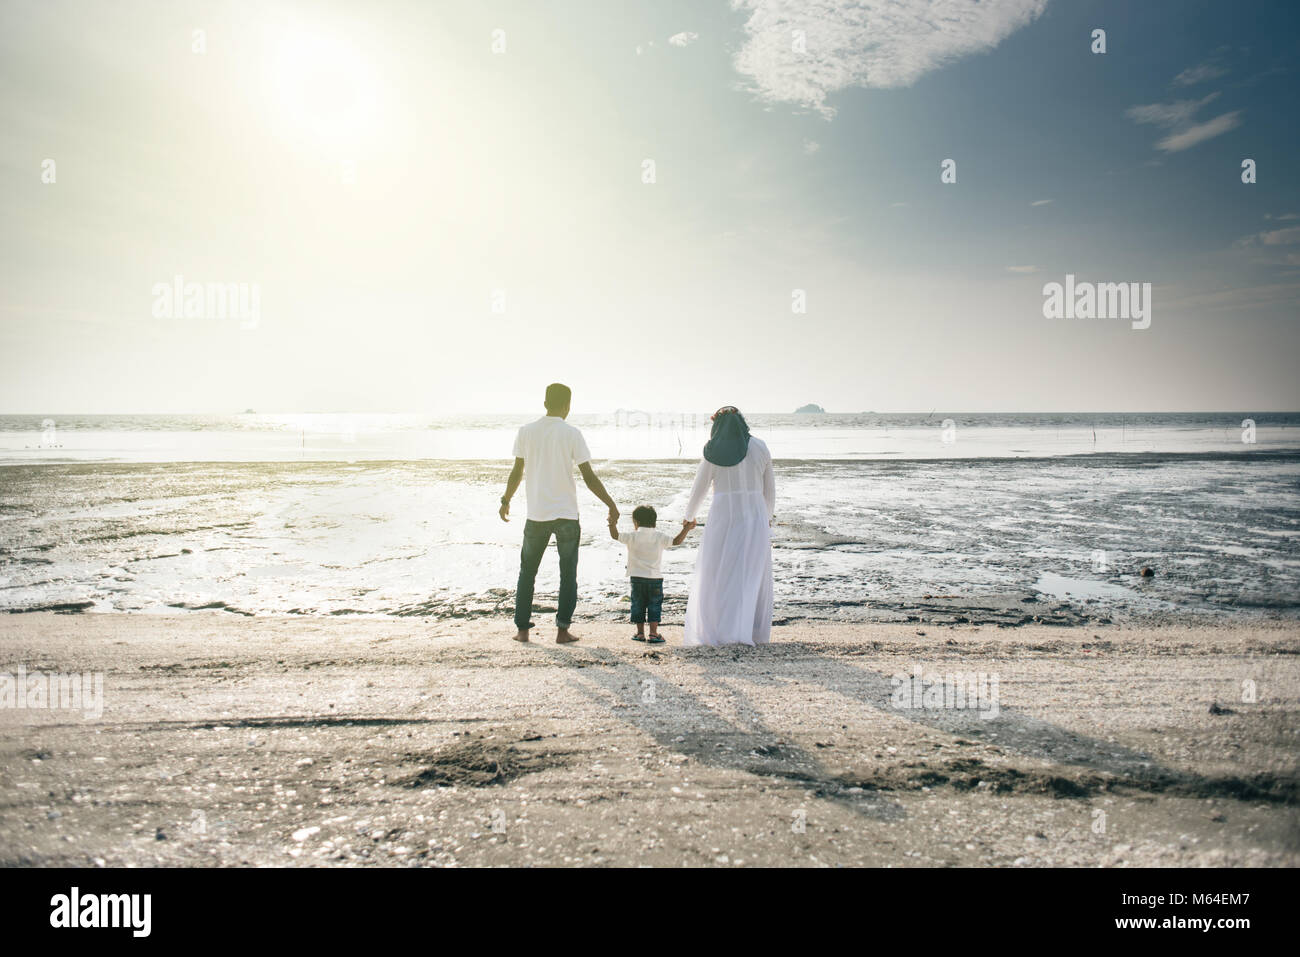 happy family having fun time together at the beach having nice sunset view located in Pantai Remis,Kuala selangor,selangor,malaysia. Stock Photo